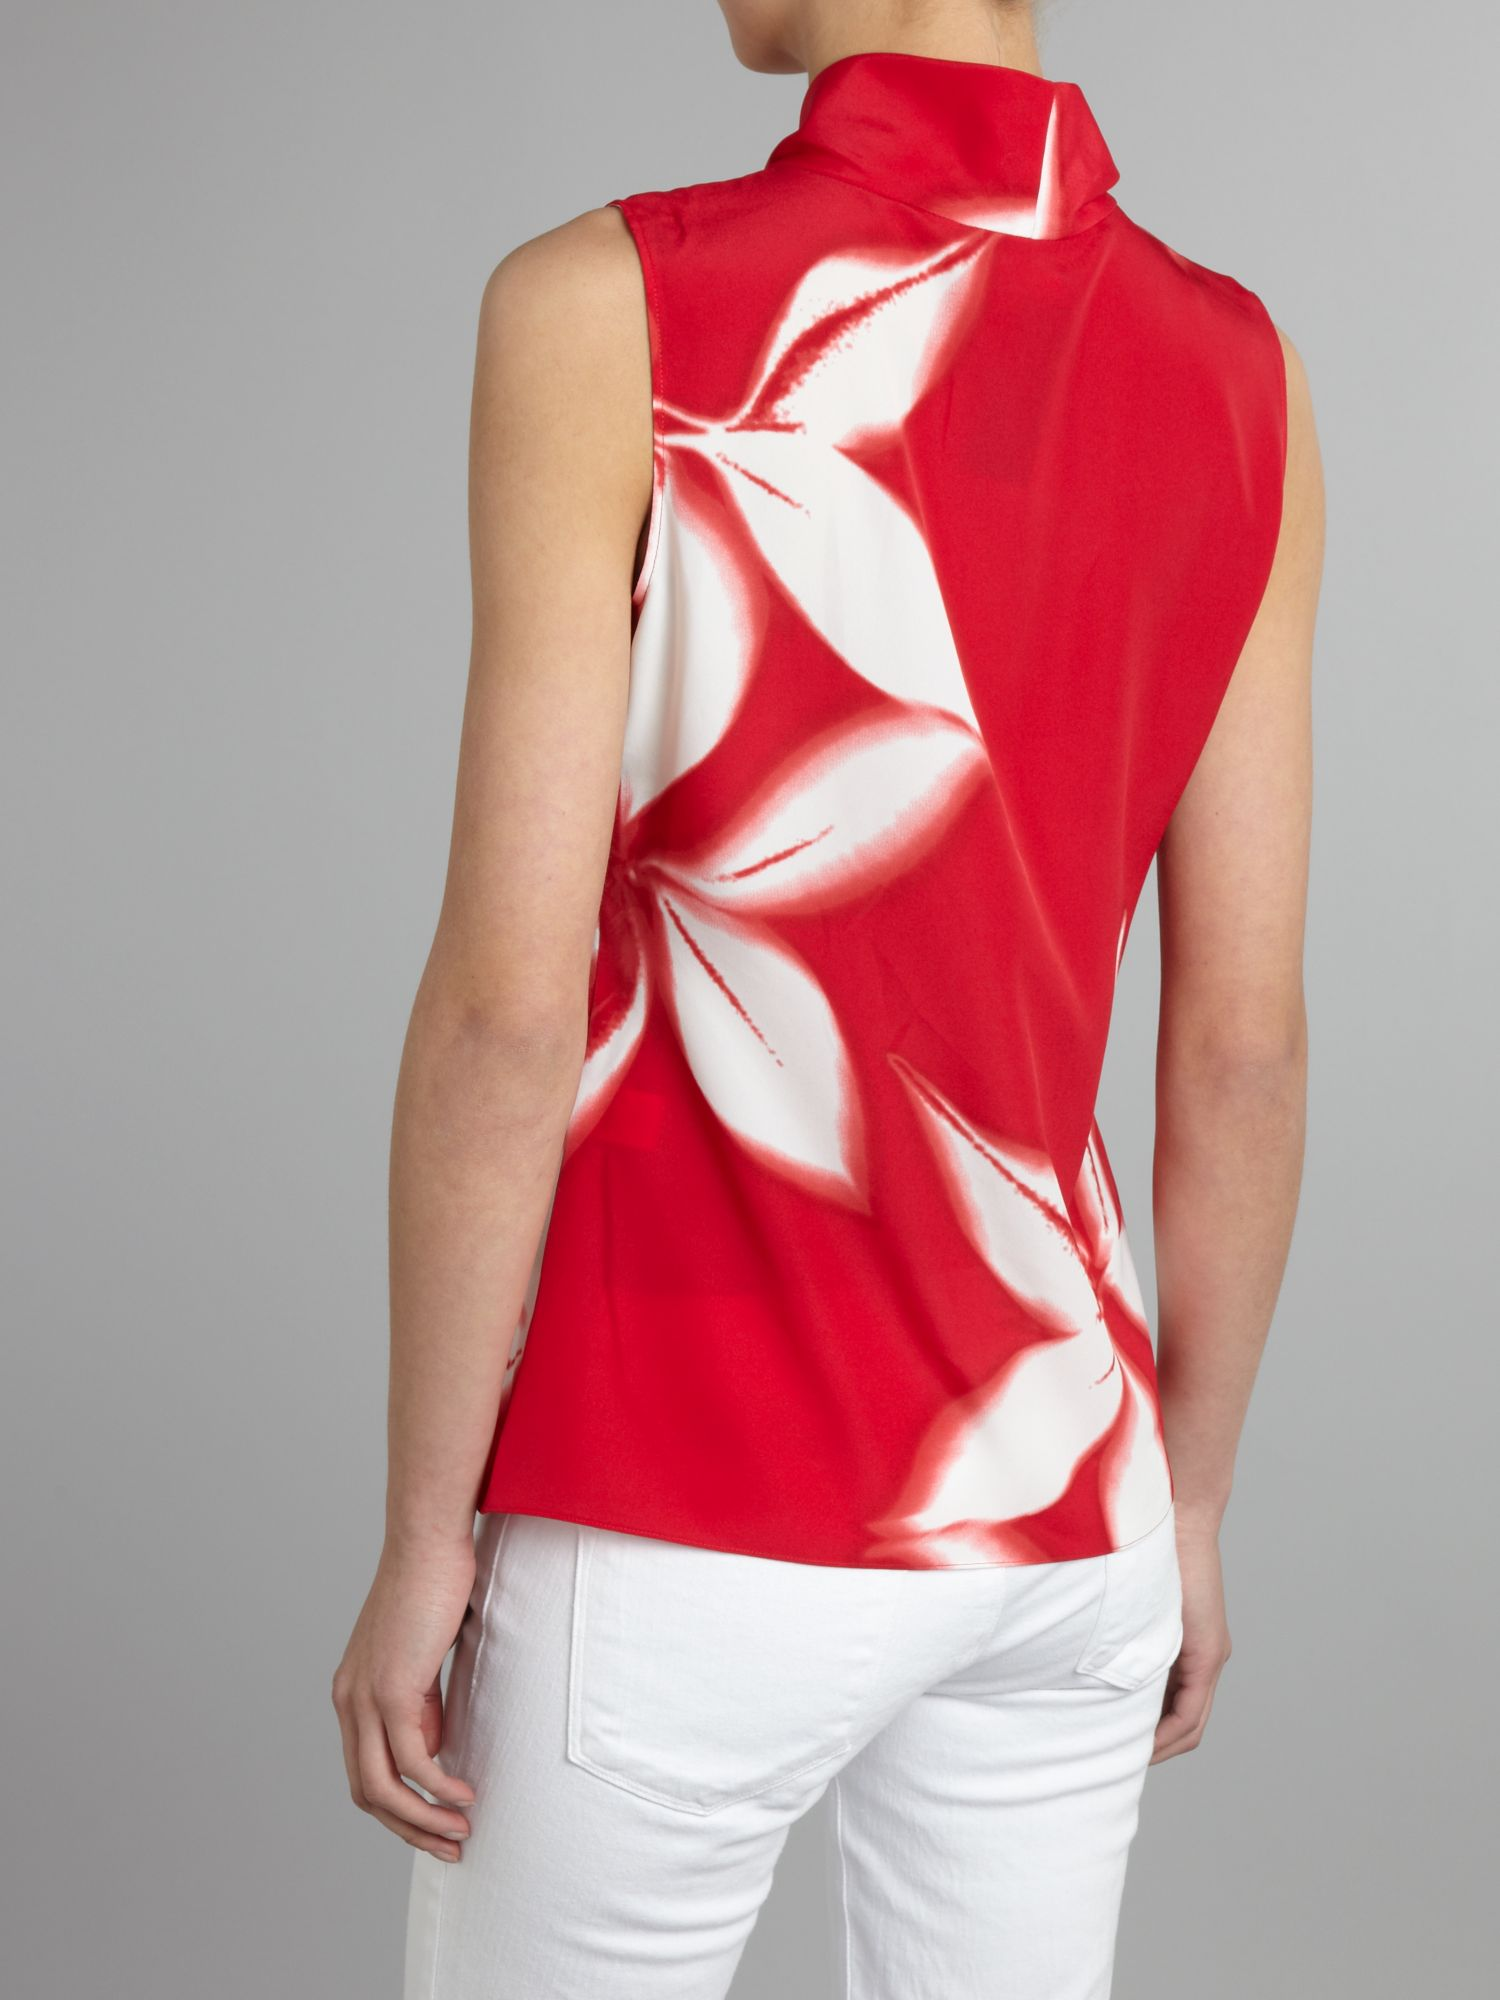 T Tahari Floral print detail ruffle blouse - Poppy S,S,S,S product image